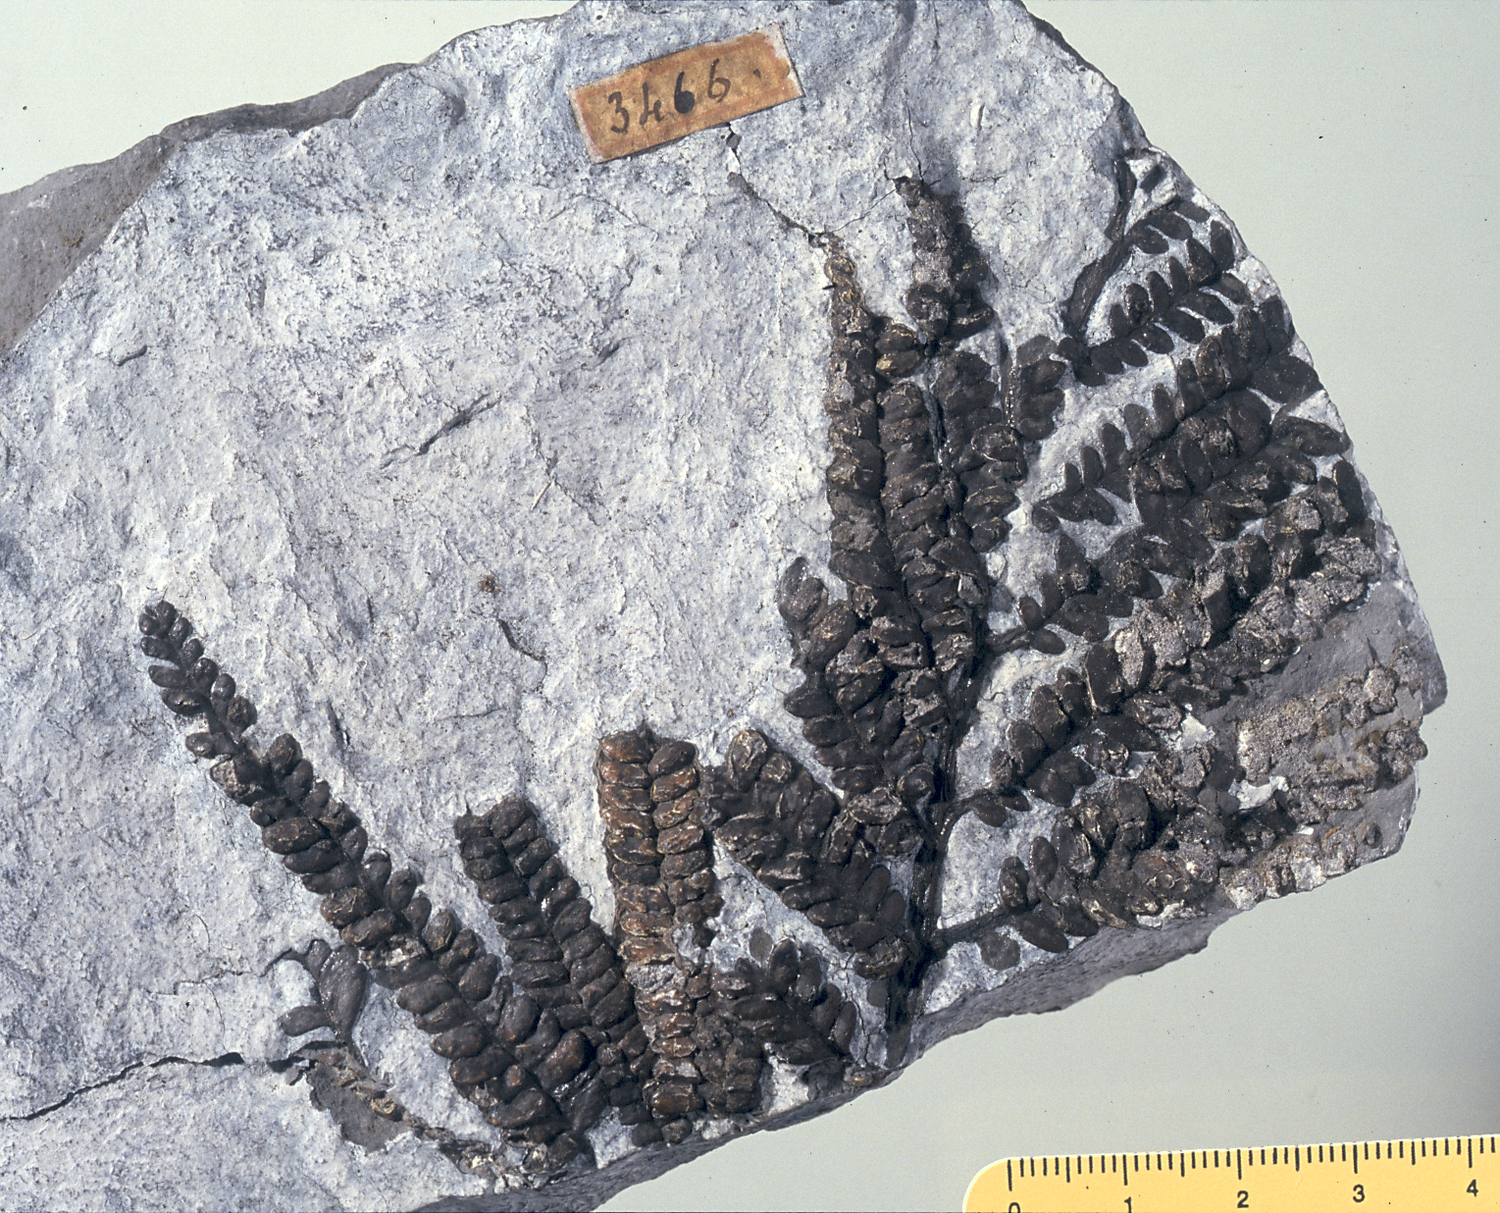 Fossil of fern (Dichopteris visianica) from the geopaleontological collection of Achille De Zigno